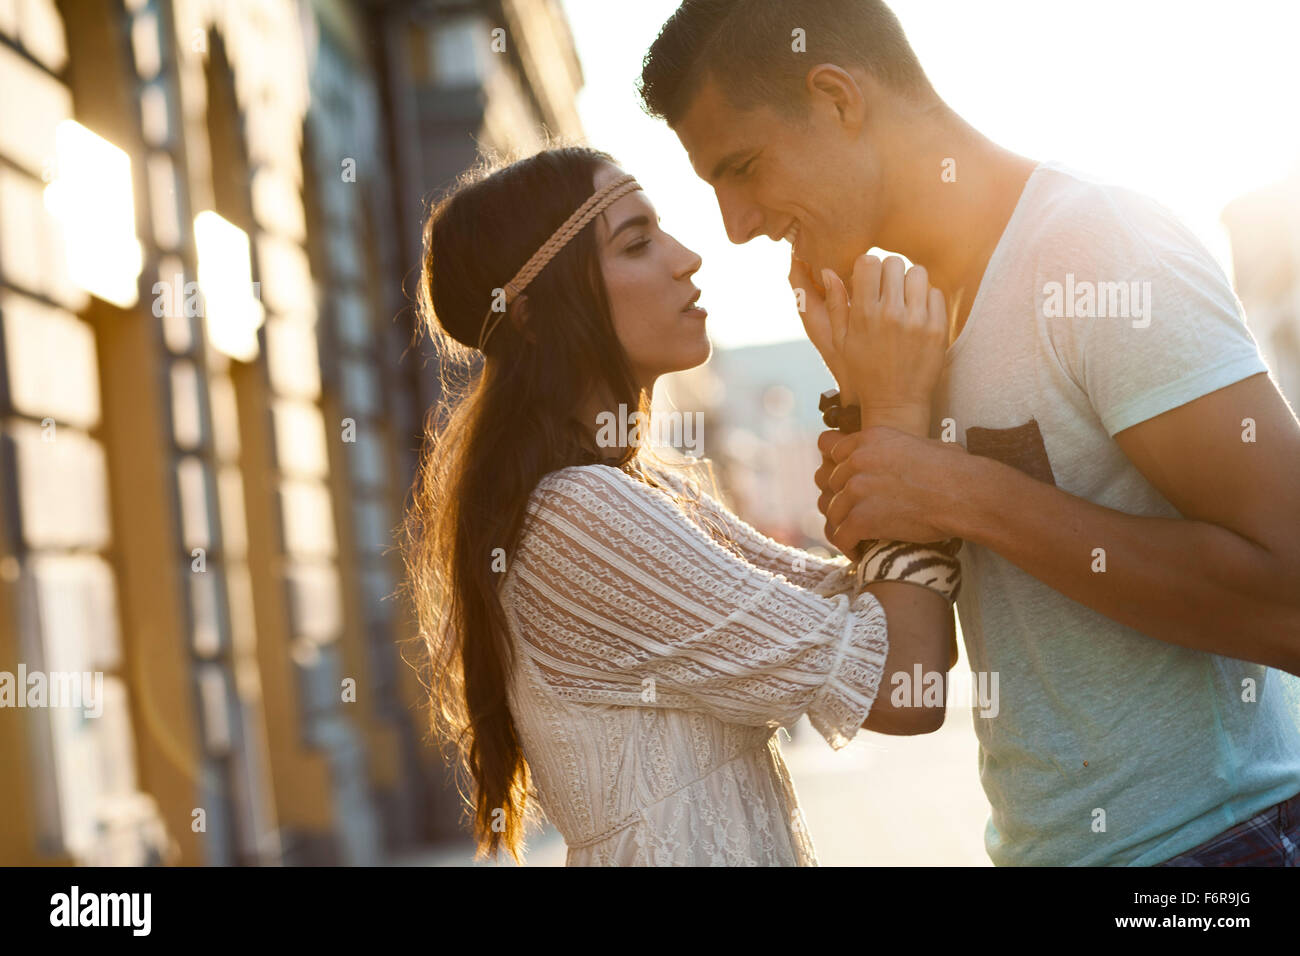 Young couple in hippie style fashion falling in love - Stock Image